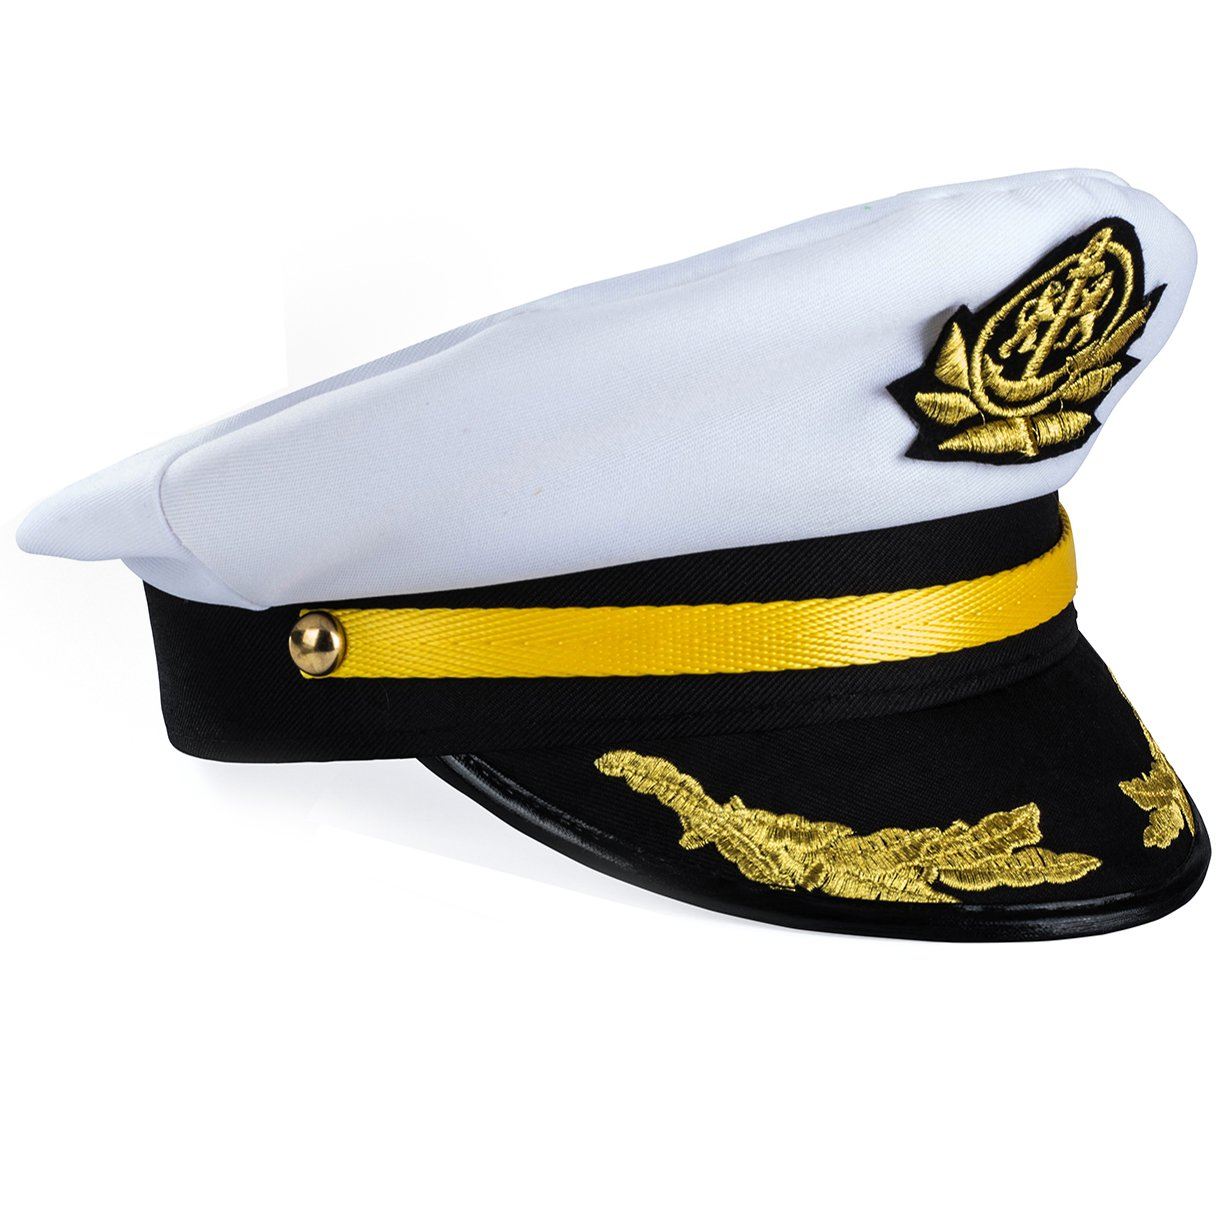 Yacht Captain Hat – Sailor Cap , Skipper Hat , Navy Marine Hat - Costume Accessories by Funny Party Hats am356